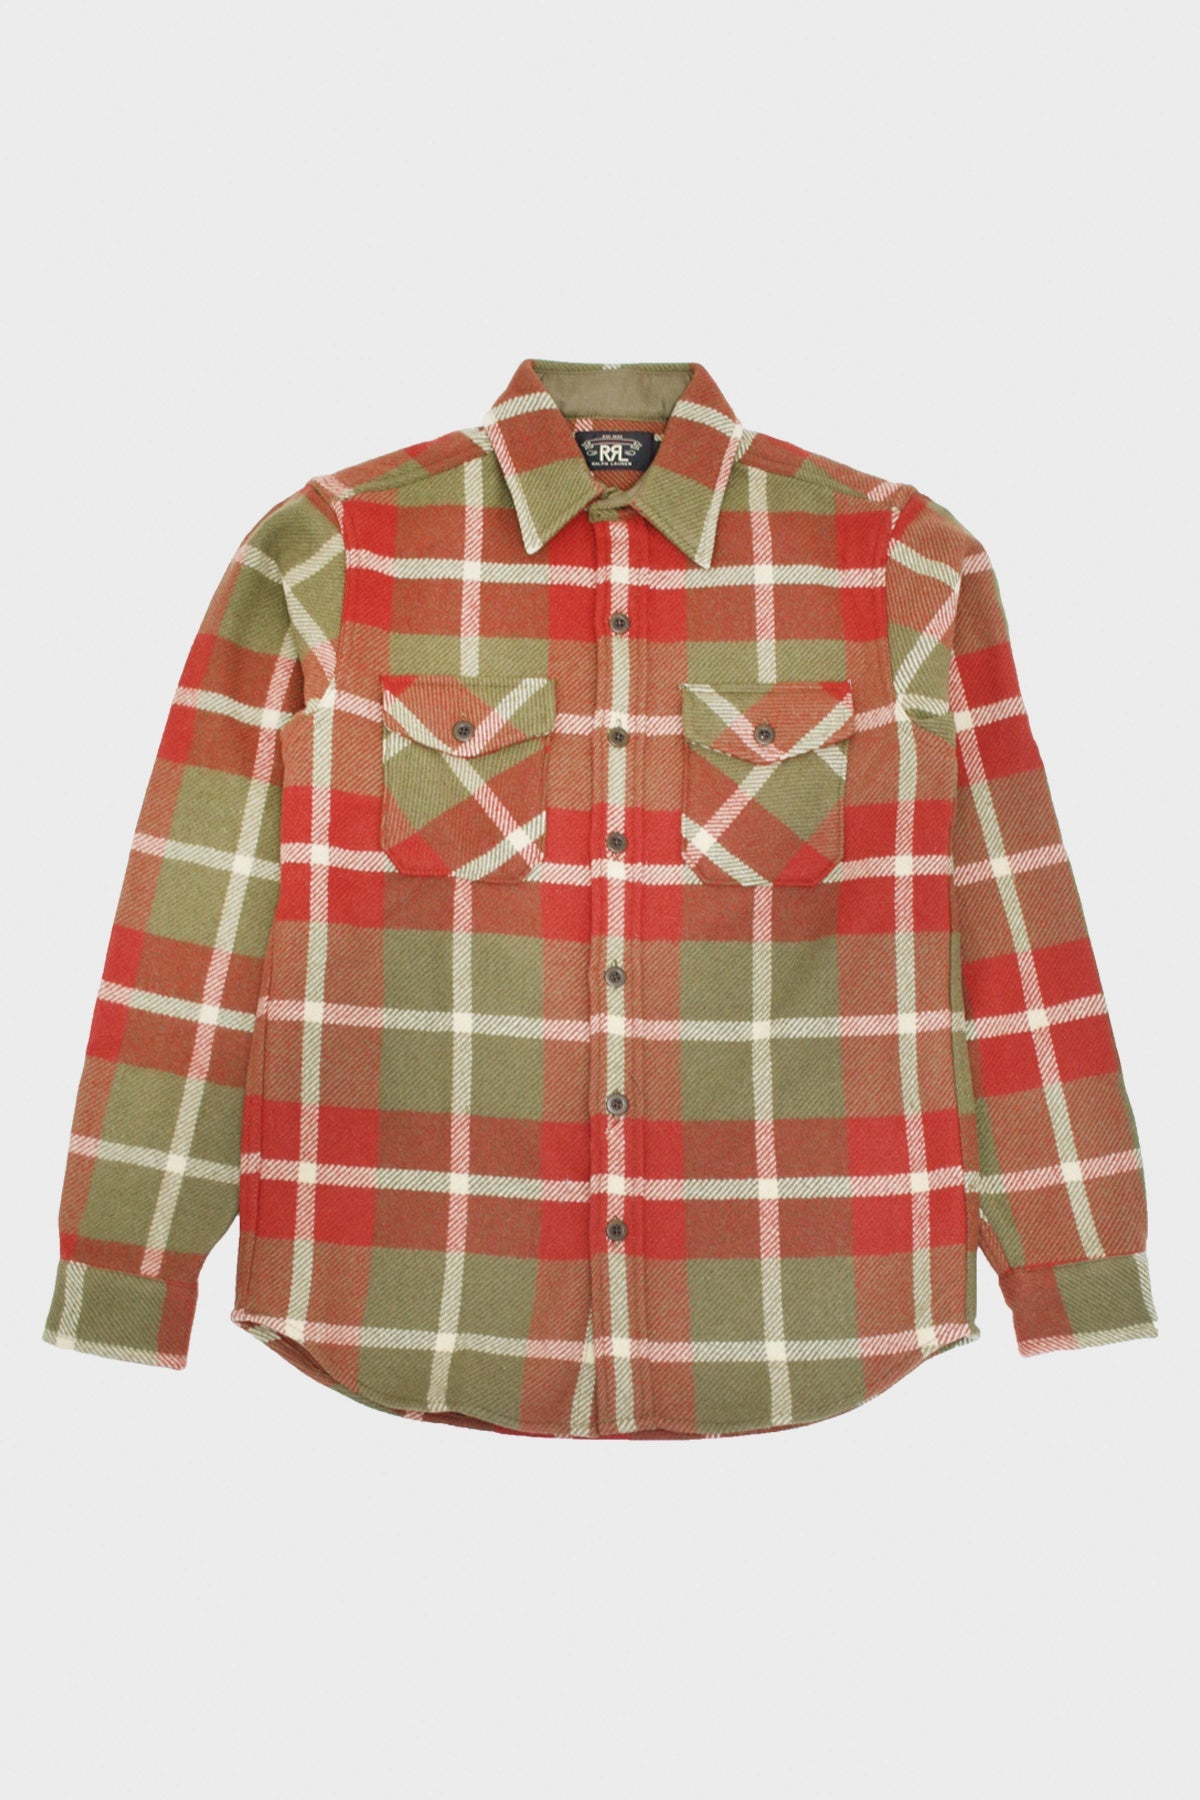 RRL - Suede Elbow Wool Overshirt - Red/Tan - Canoe Club